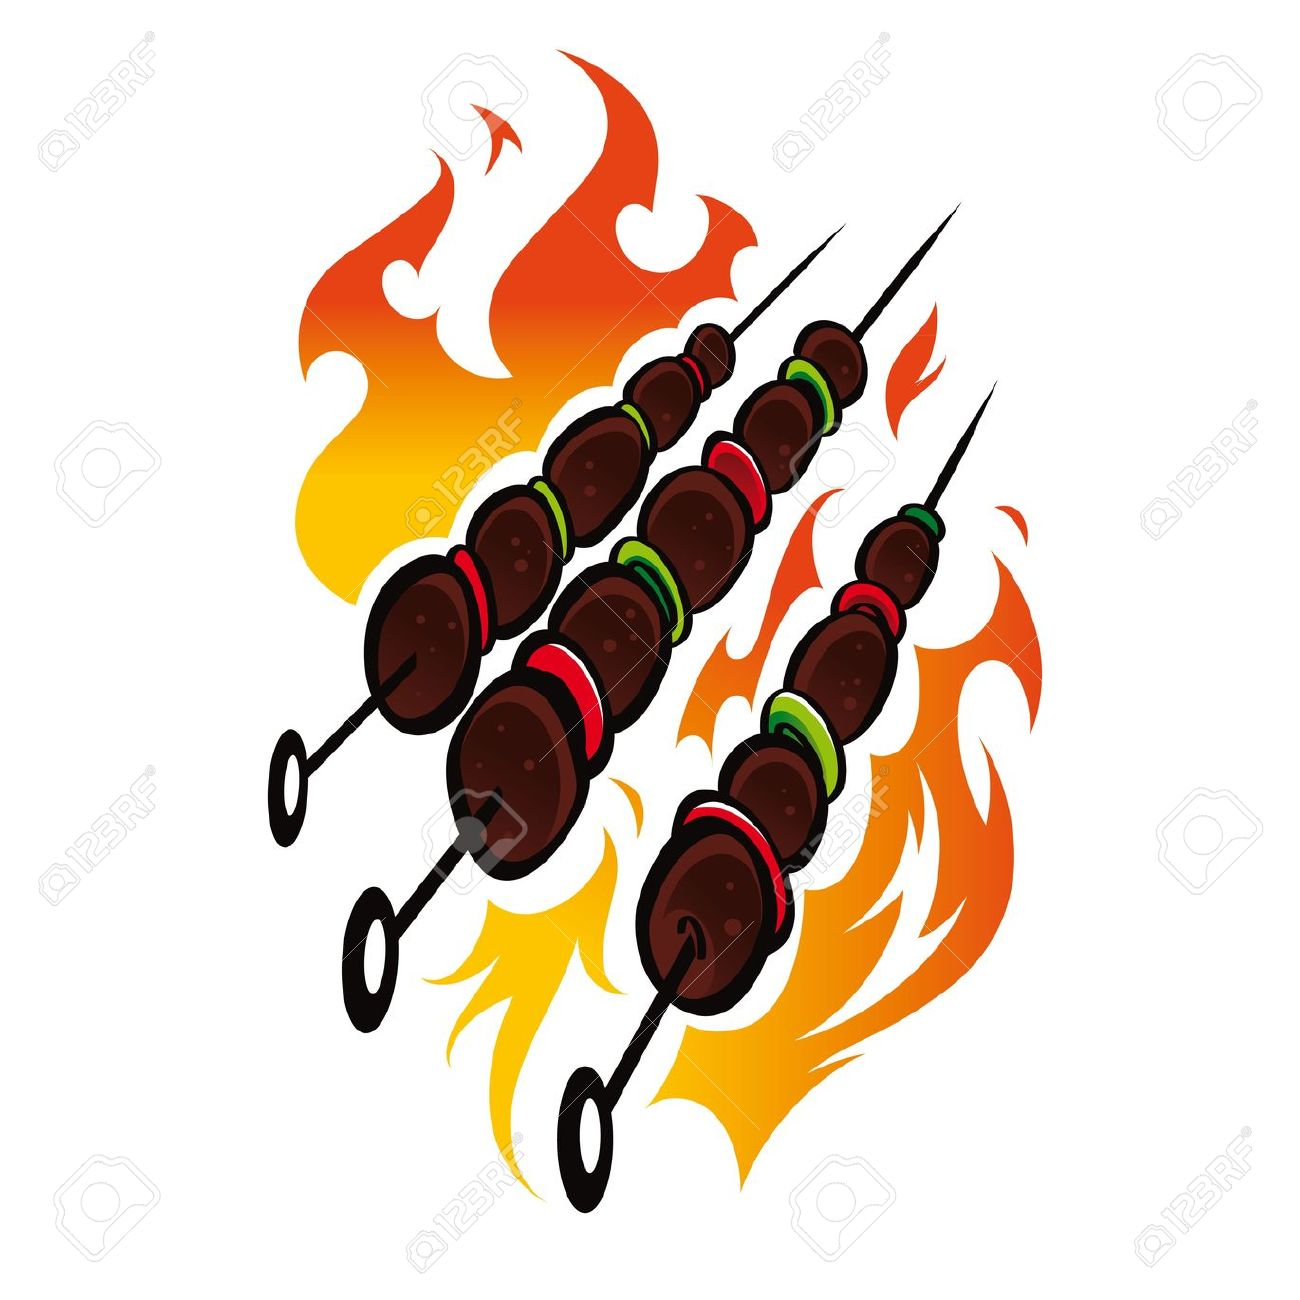 Beef clipart surf and turf Clipart Flames barbecue woman Skewers